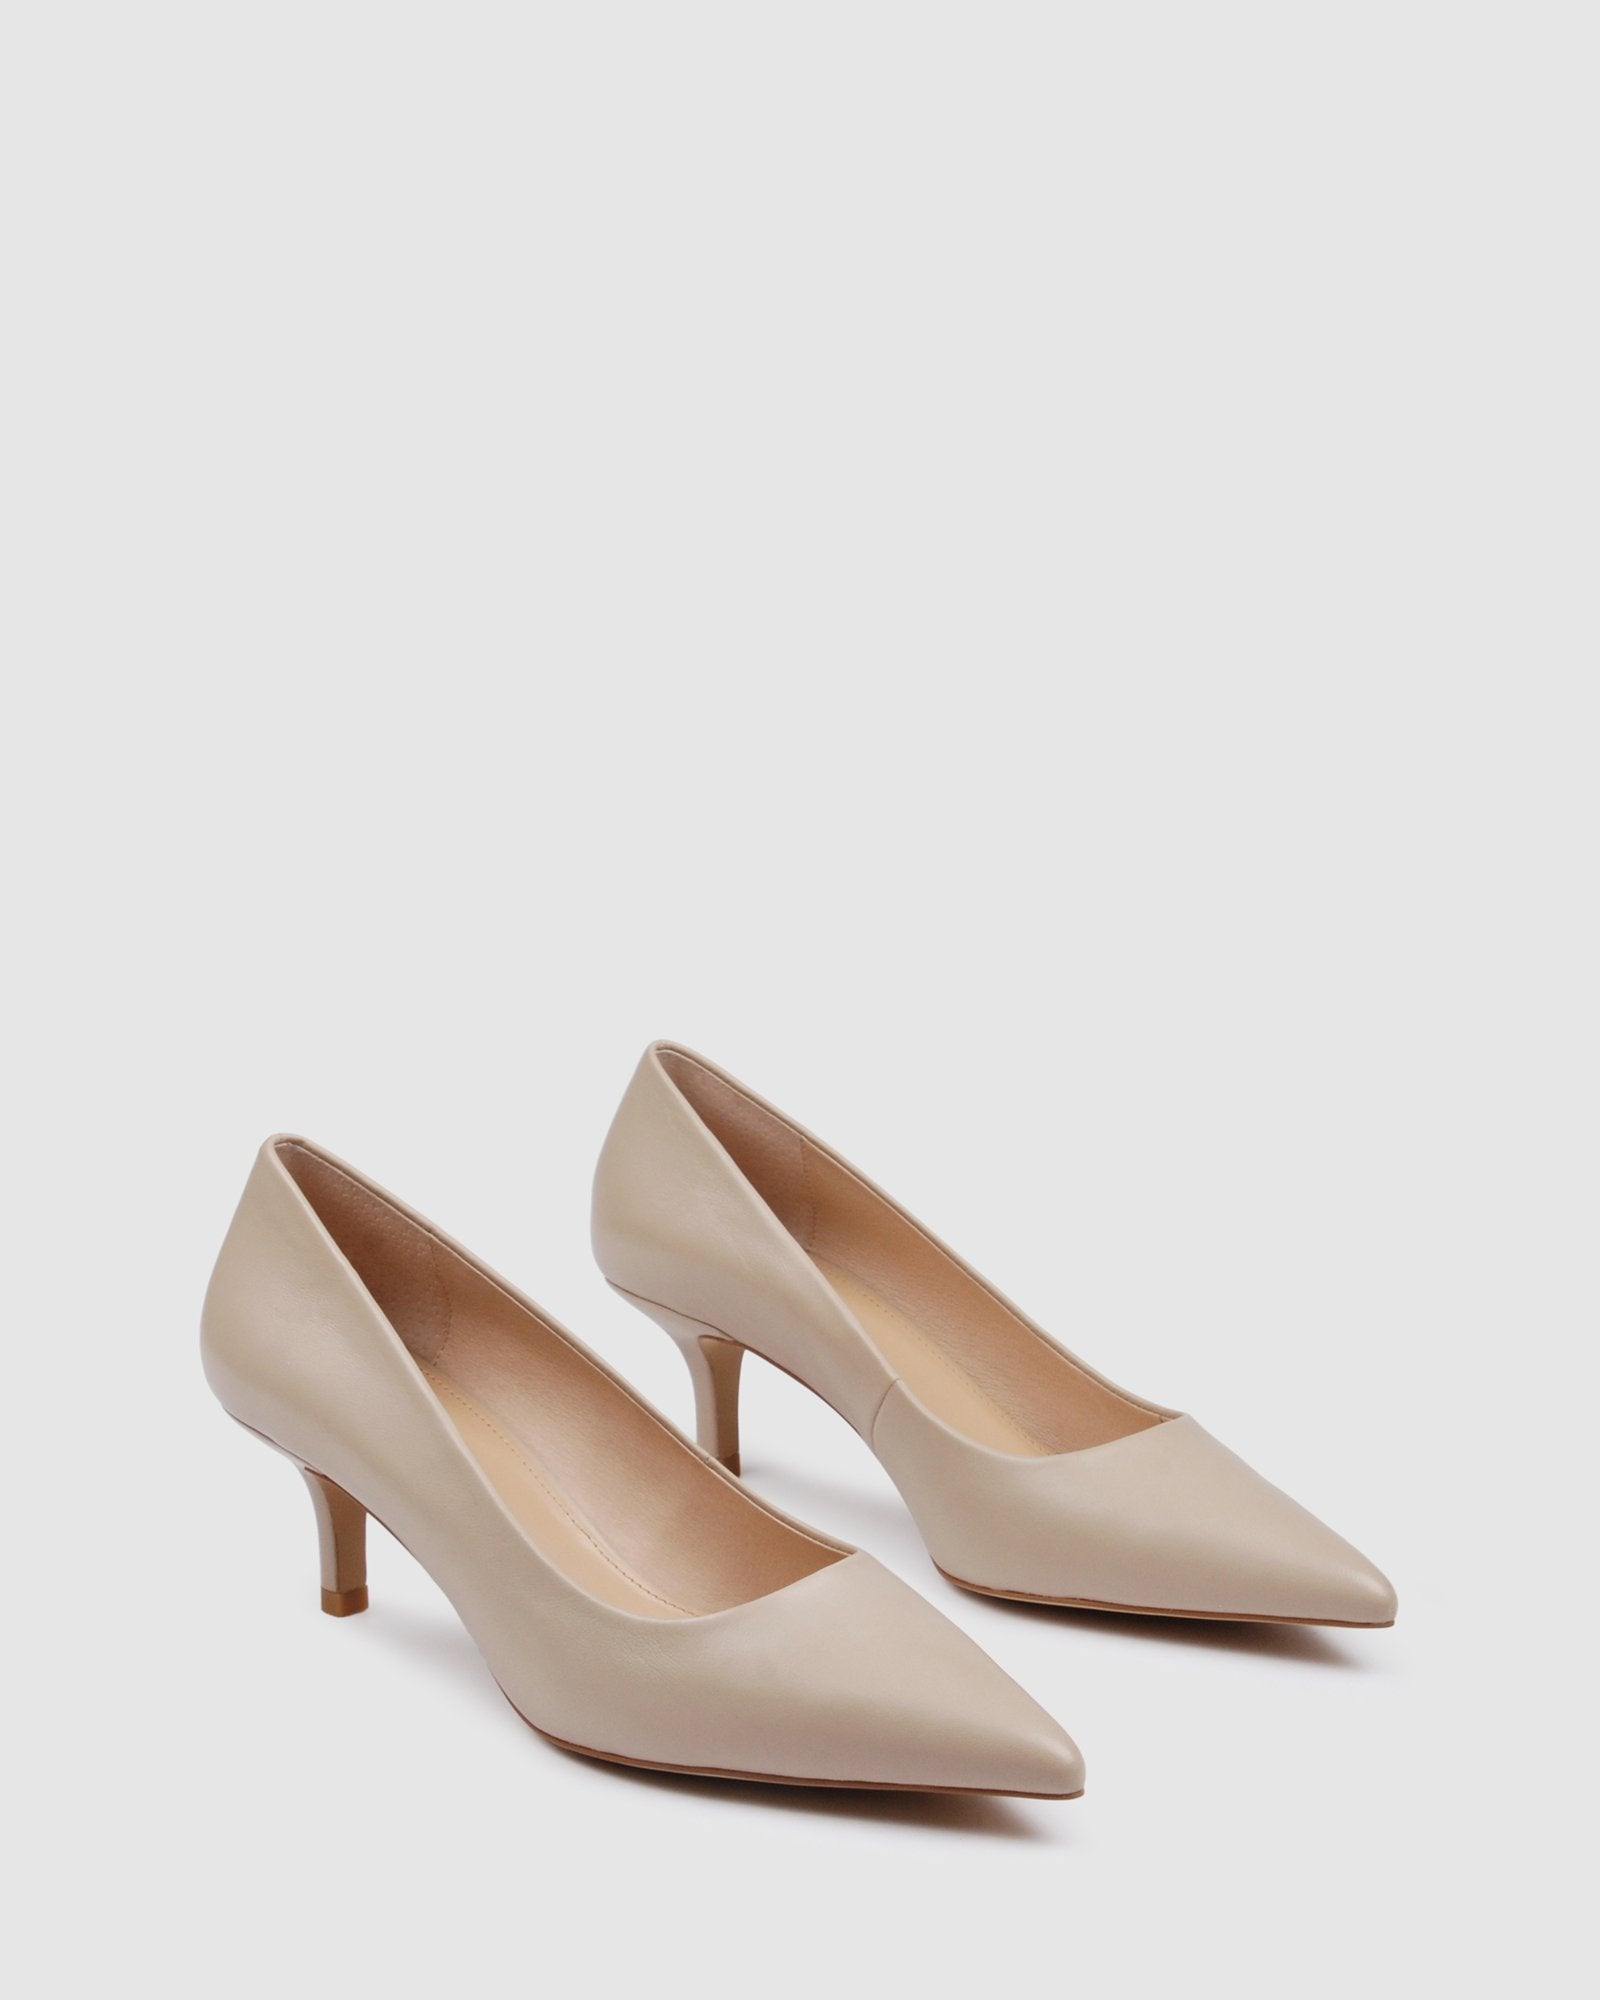 RANI LOW HEELS BEIGE LEATHER